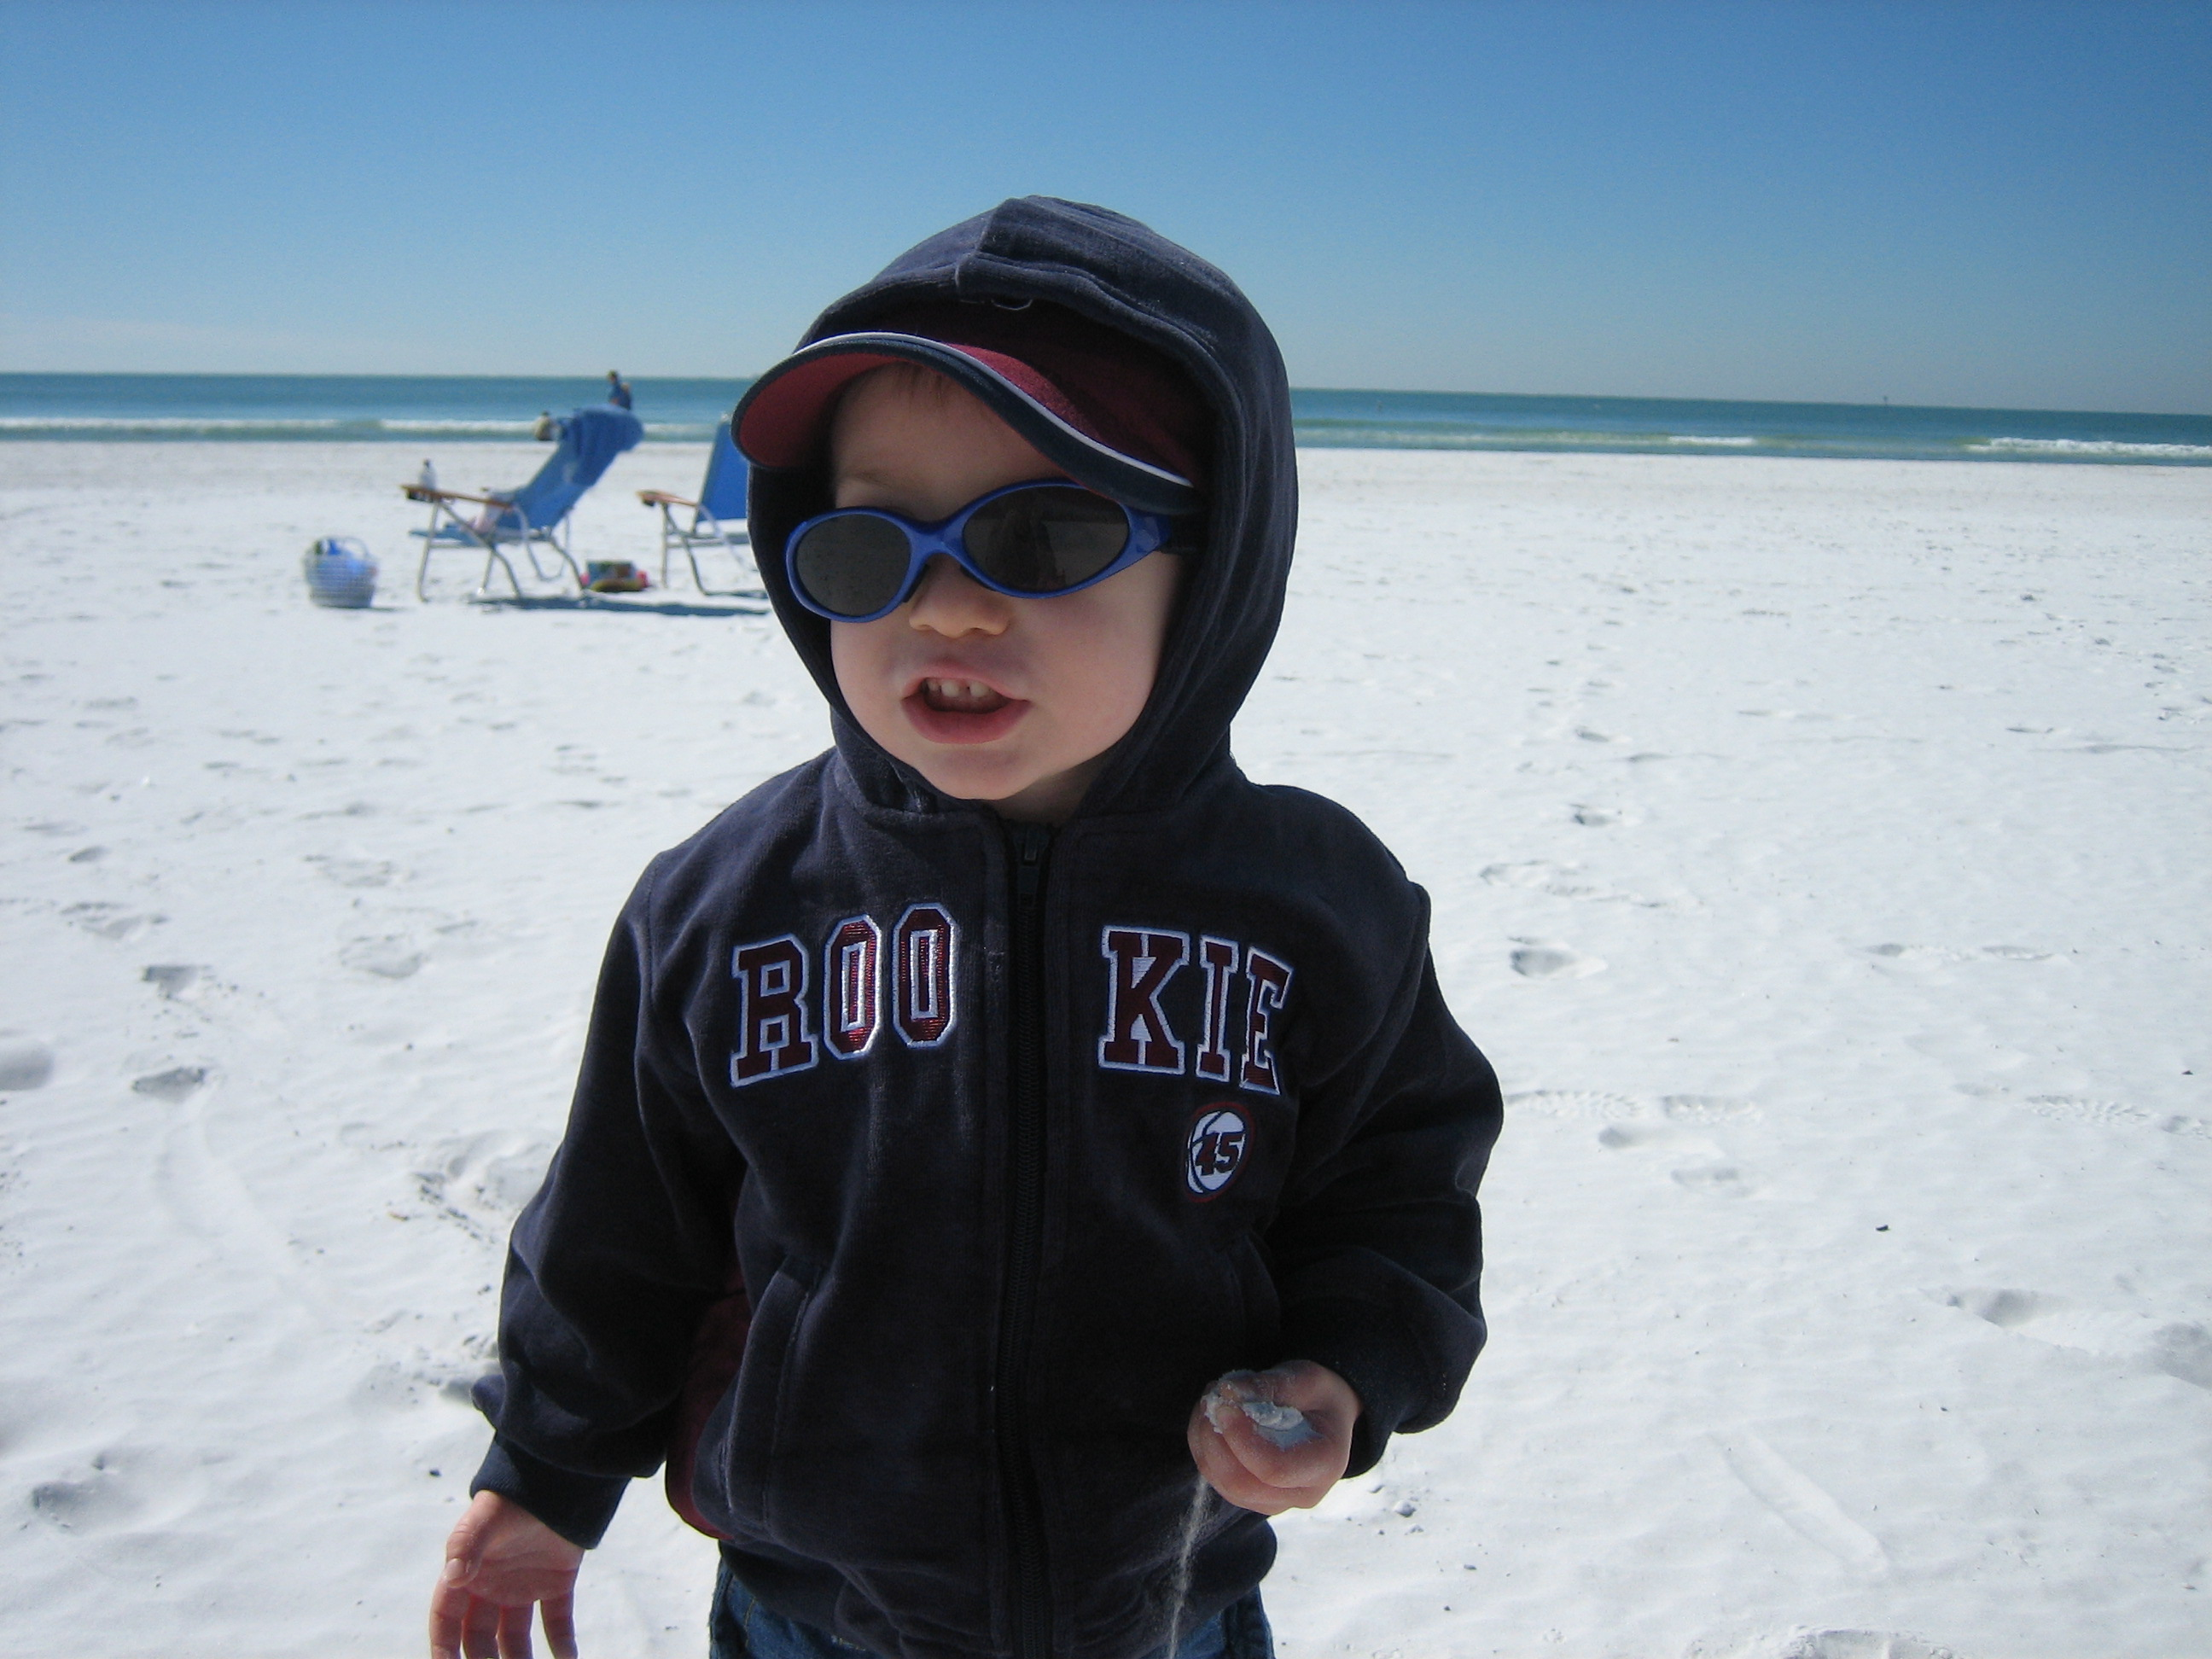 Photo Friday: Which Florida Family Beach is This?